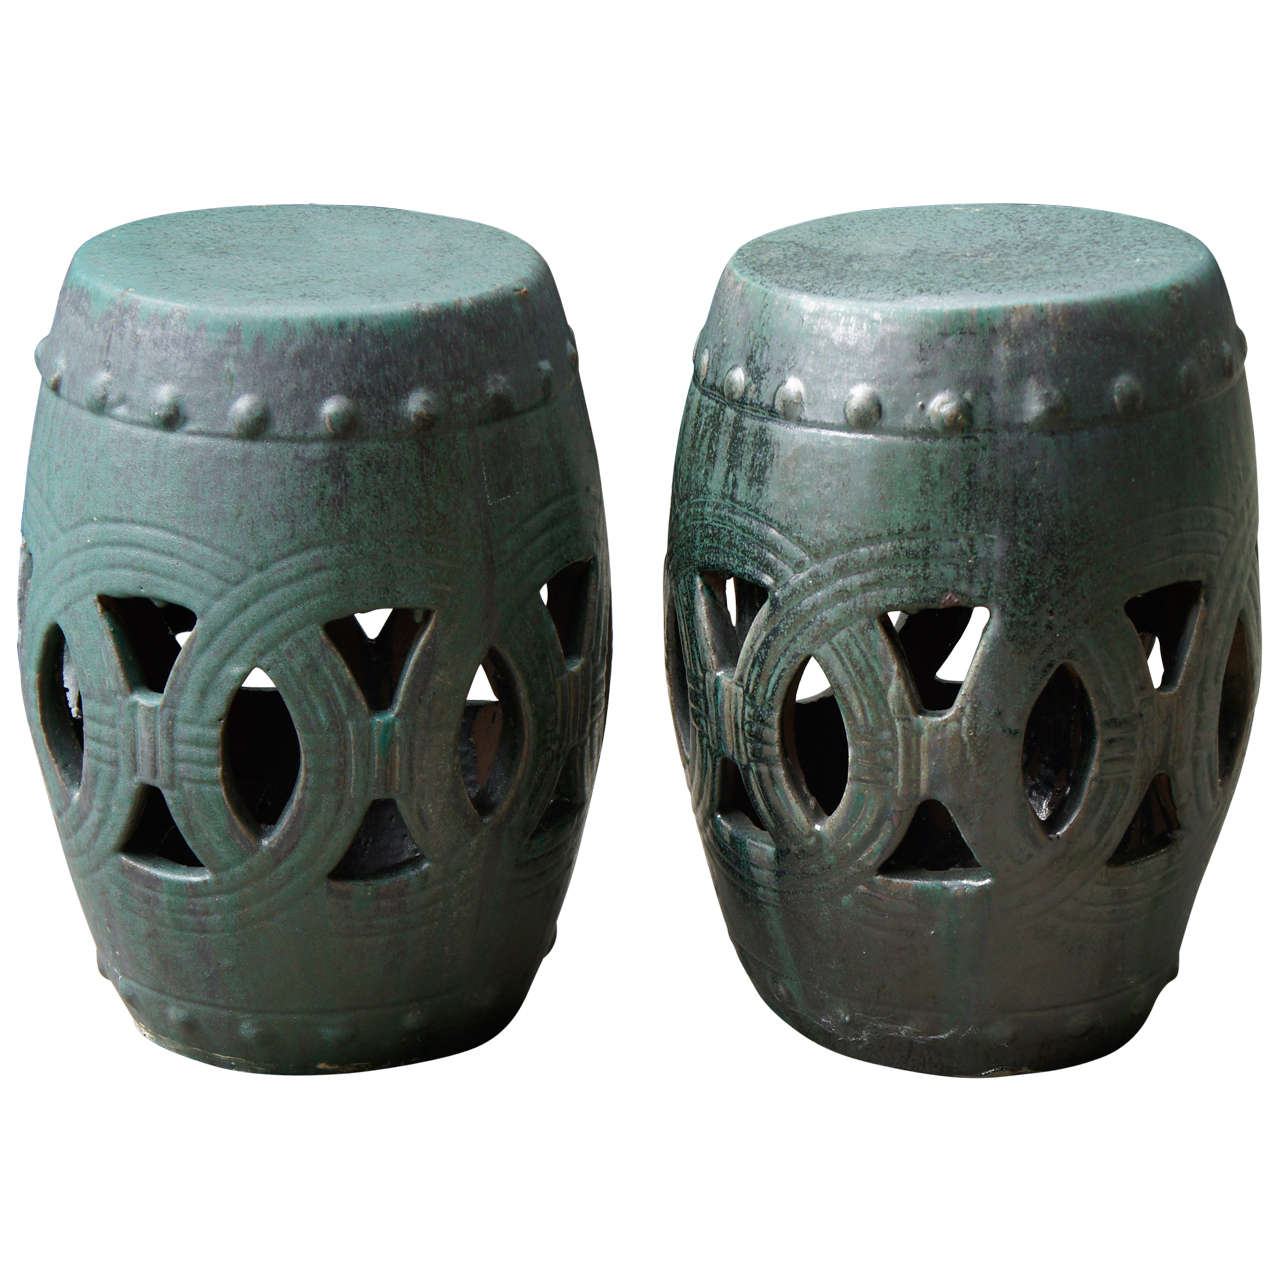 Wondrous A Fine Pair Of Vintage Chinese Glazed Terra Cotta Garden Pabps2019 Chair Design Images Pabps2019Com